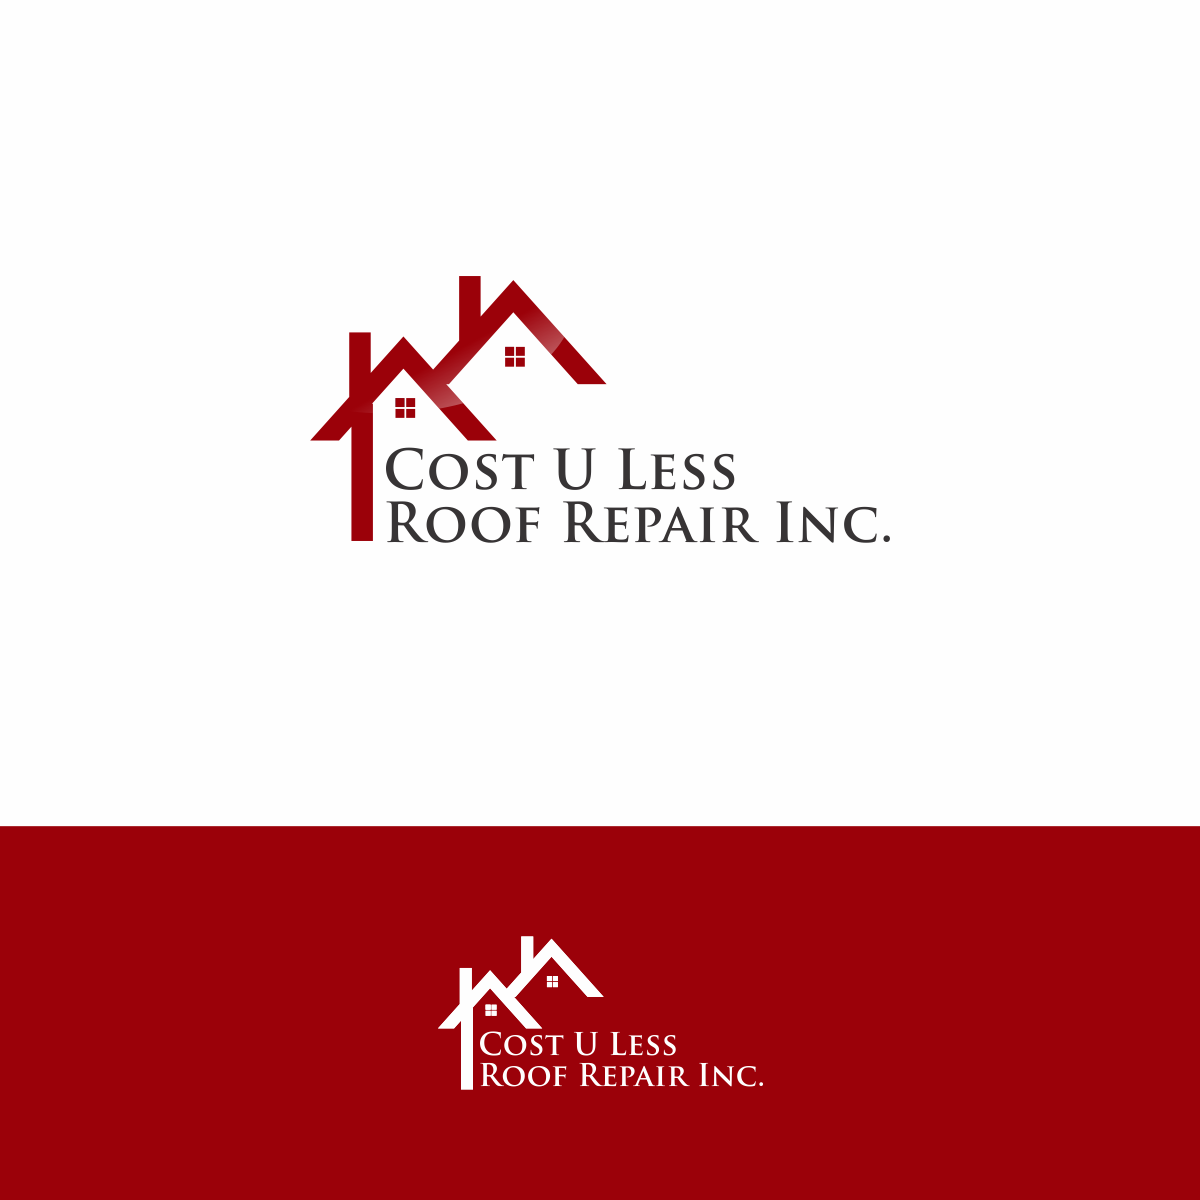 Cost U Less >> Bold Playful Business Logo Design For Cost U Less Roof